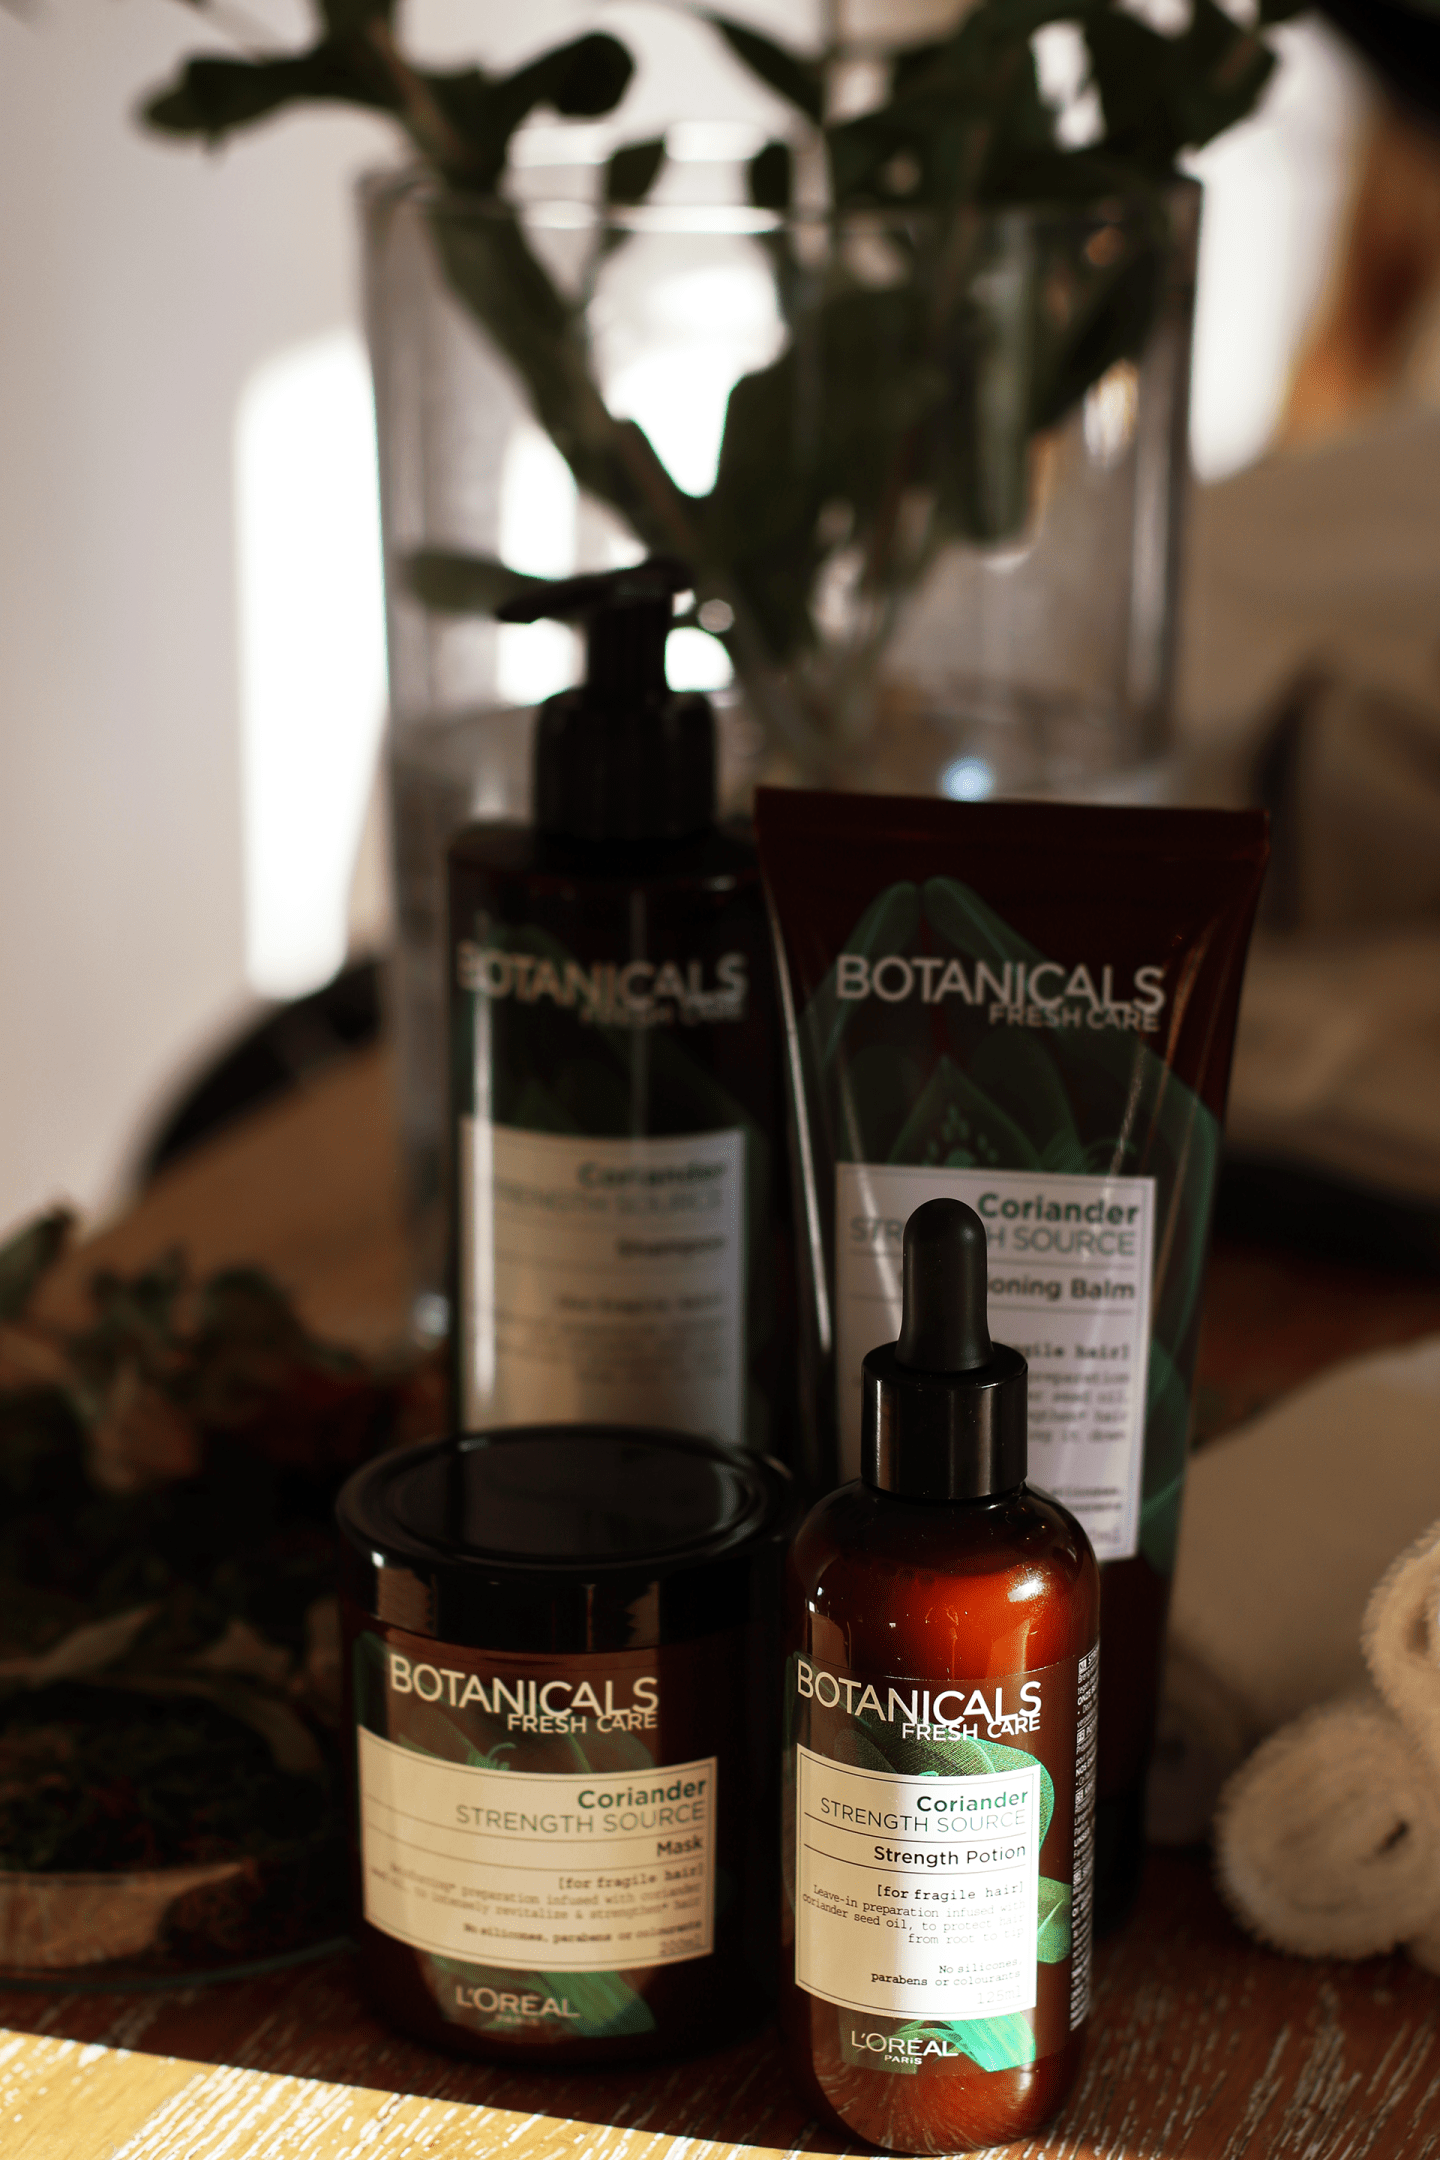 A Mini Luxury Retreat With L'Oreal Botanicals